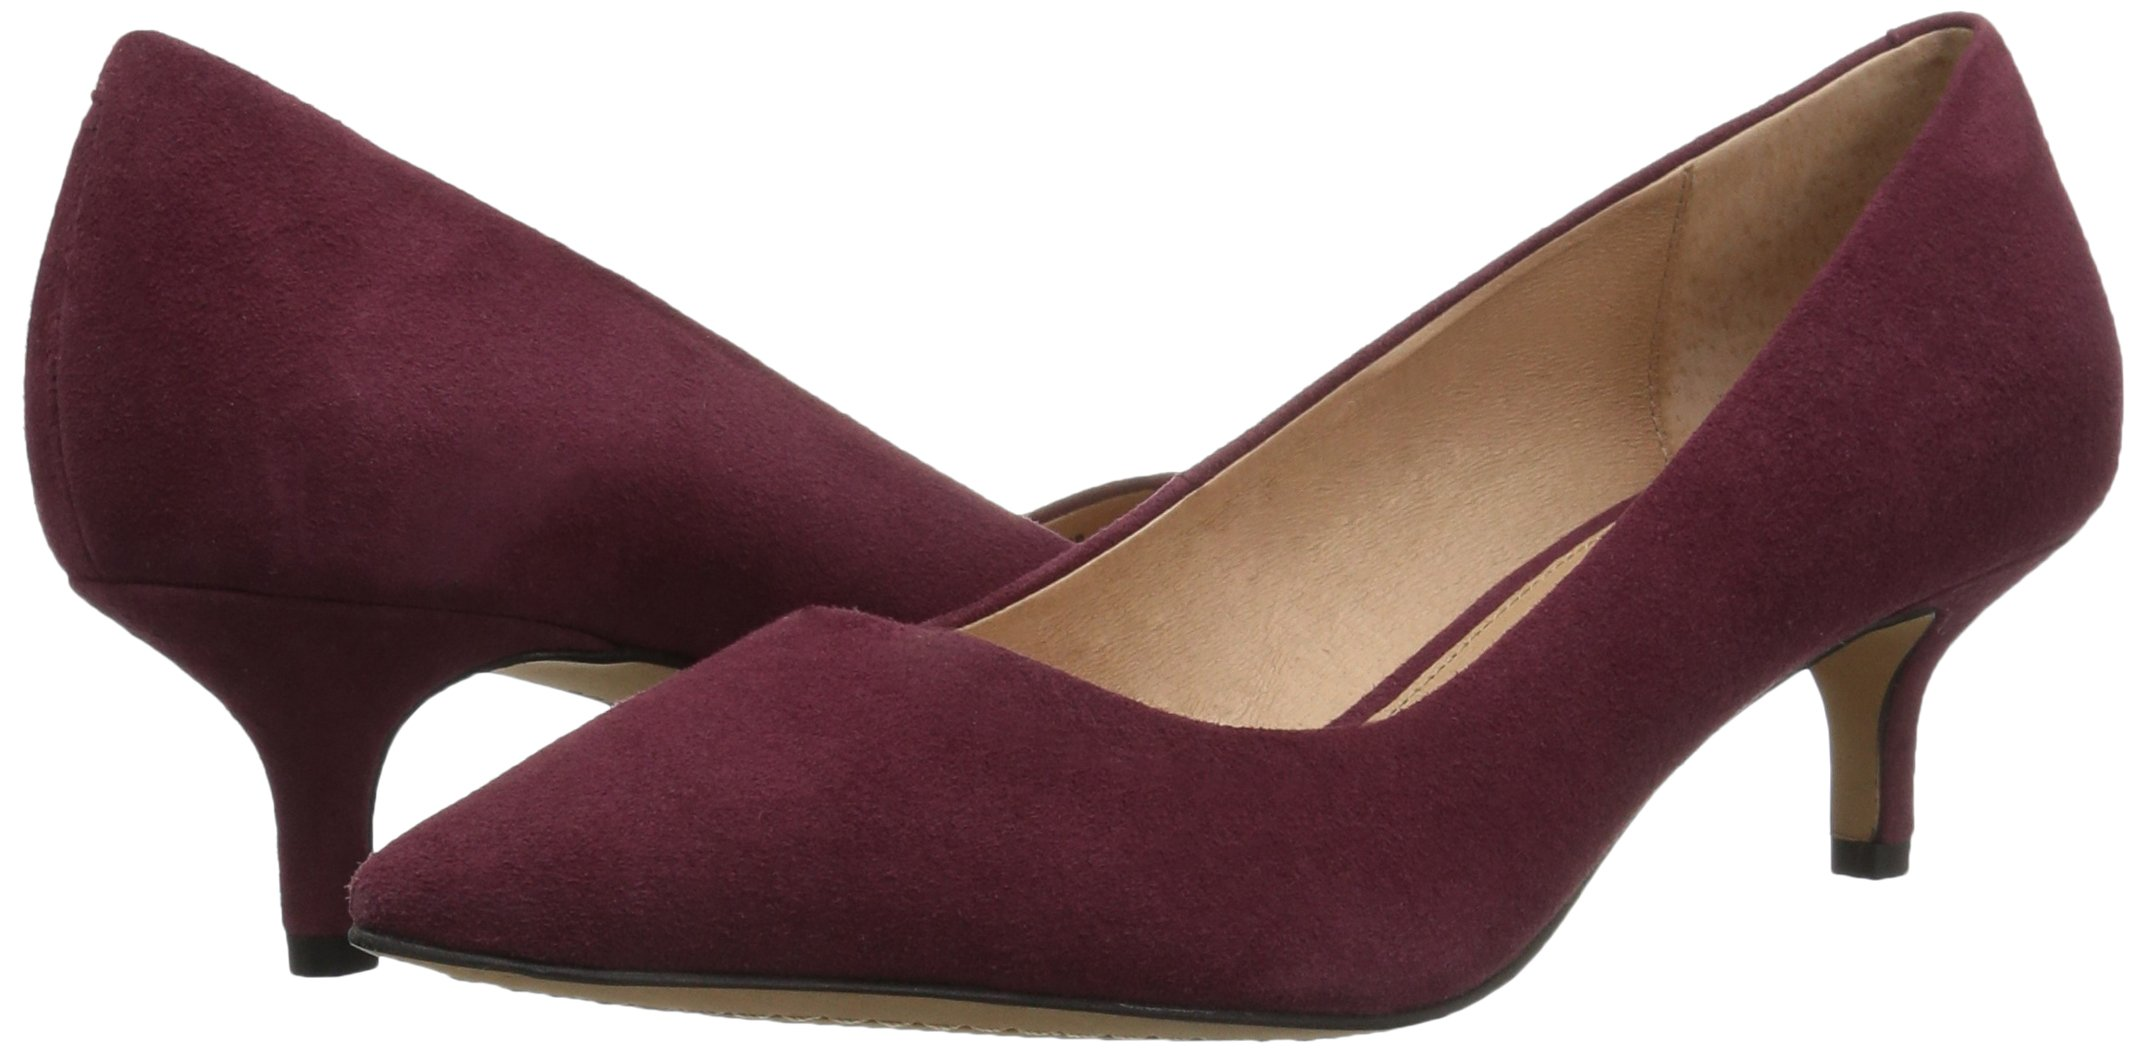 206 Collective Women's Queen Anne Kitten Heel Dress Pump, Burgundy, 8.5 B US by 206 Collective (Image #6)